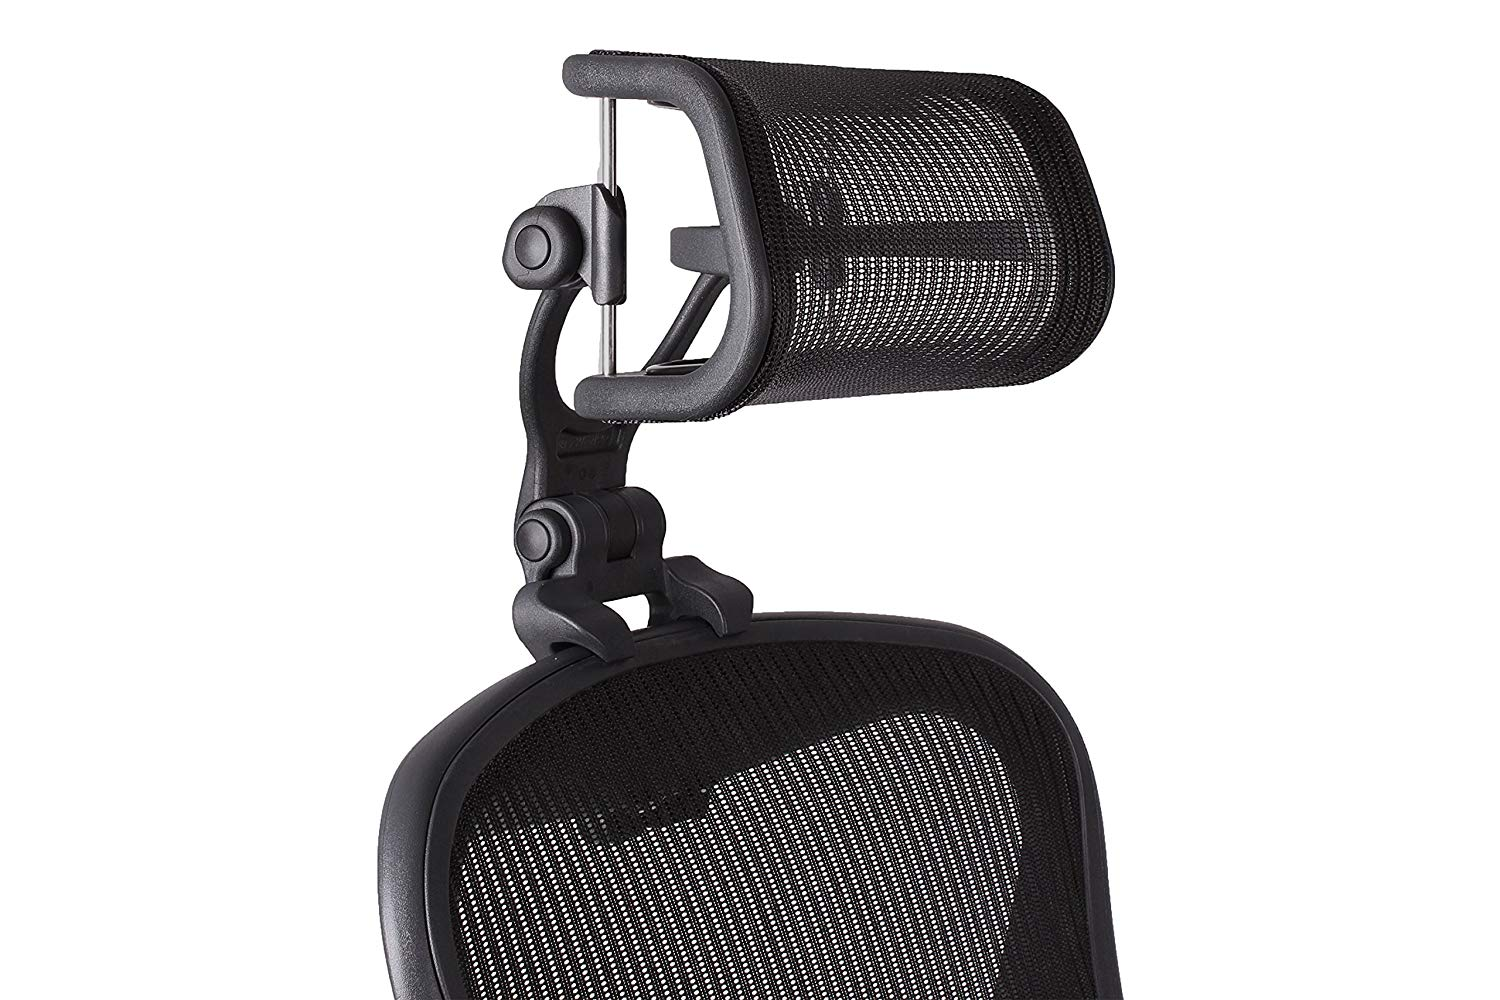 The Original Headrest for The Herman Miller Aeron Chair H48 Carbon  Colors  and Mesh Match Classic Aeron Chair 48 and Earlier Models